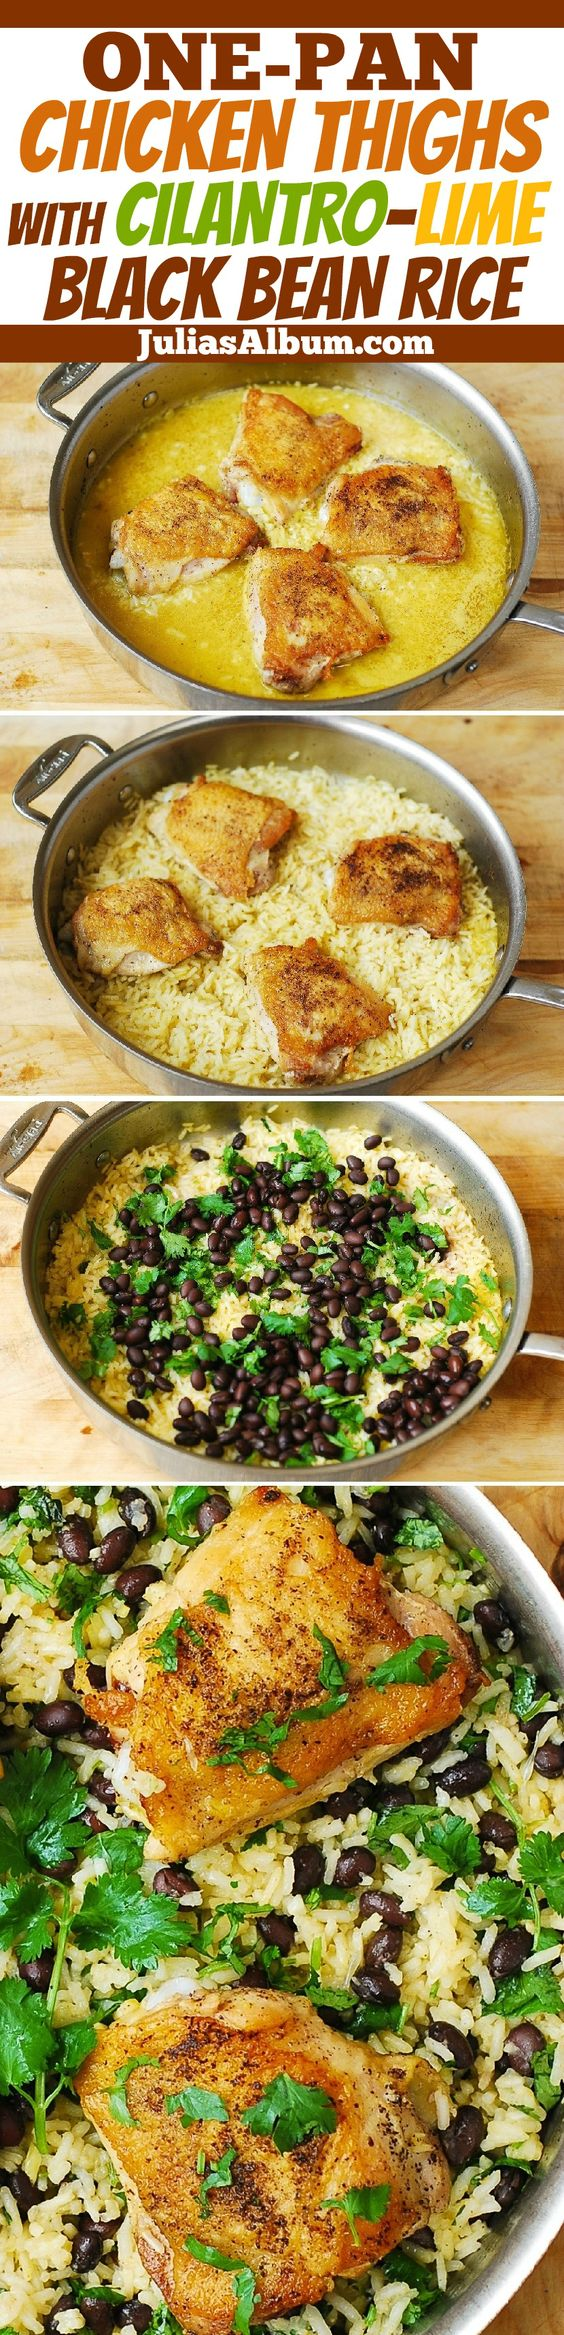 One-Pot Chicken Thighs with Cilantro-Lime Black Bean Rice - delicious, healthy, gluten free dinner! Made on stove-top, in one pot, no need to turn on the oven!